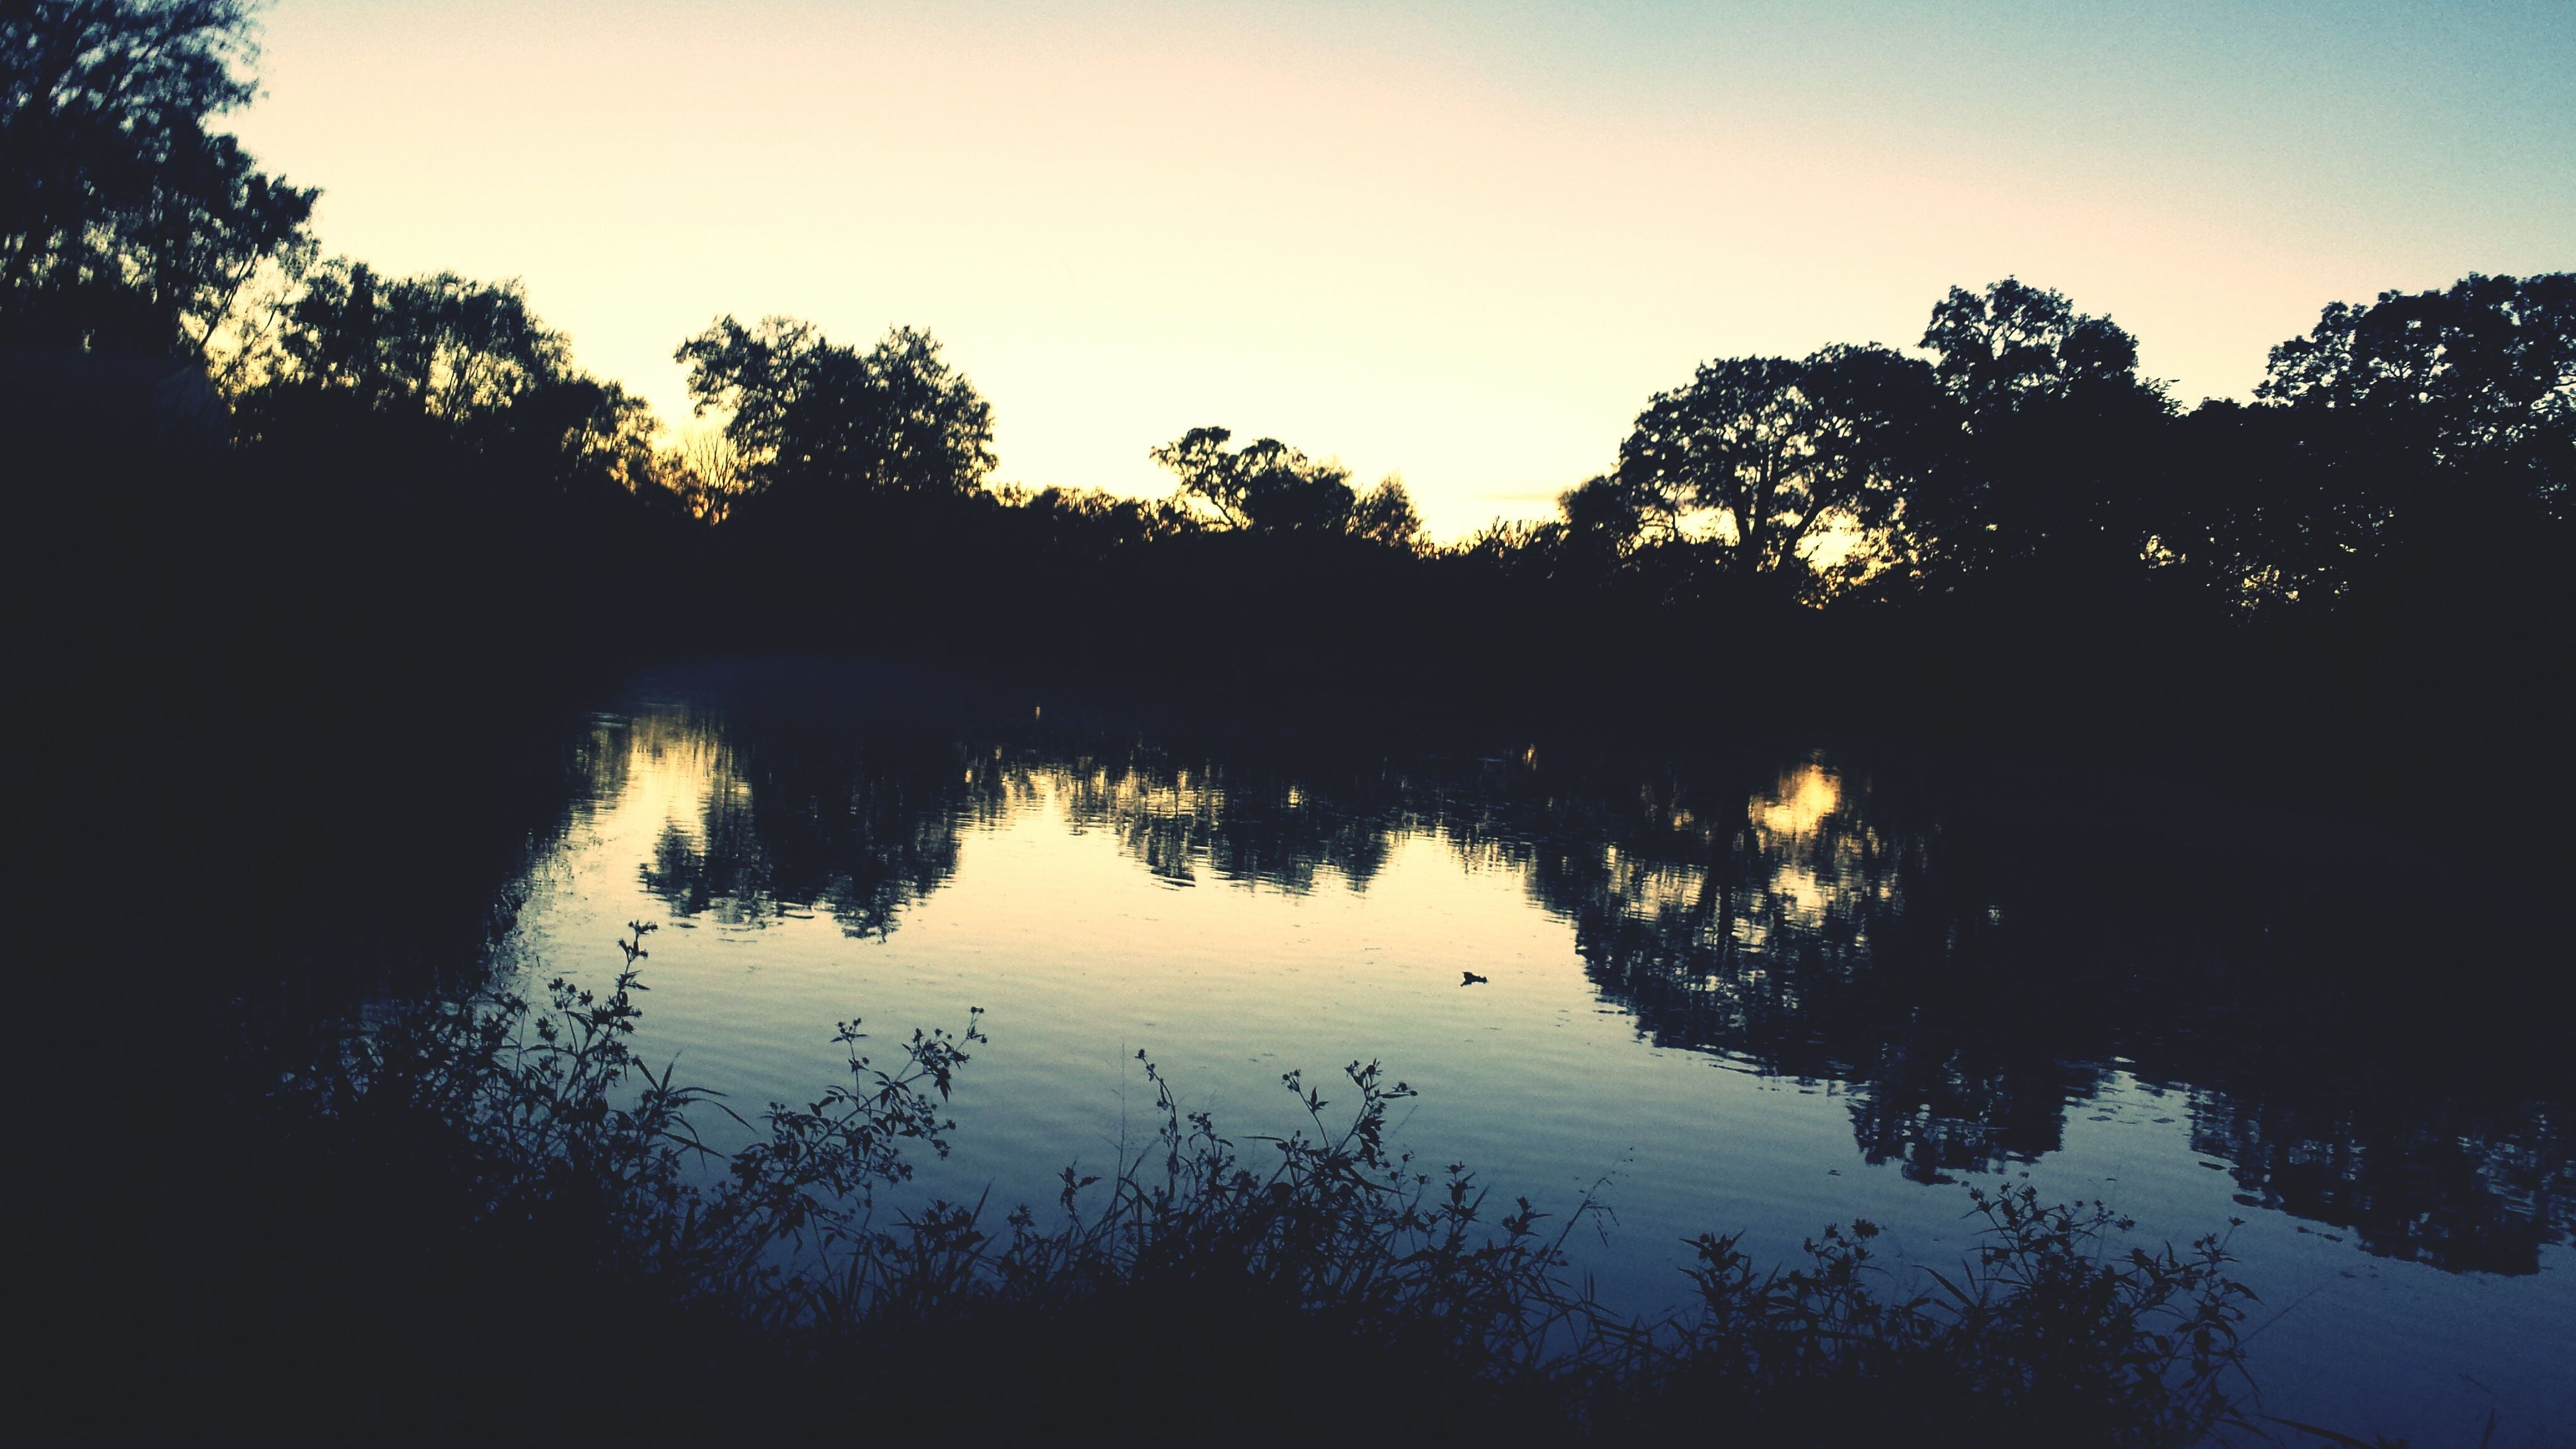 silhouette, tree, water, sunset, reflection, tranquil scene, tranquility, lake, scenics, beauty in nature, nature, sky, clear sky, idyllic, calm, growth, dusk, standing water, river, outdoors